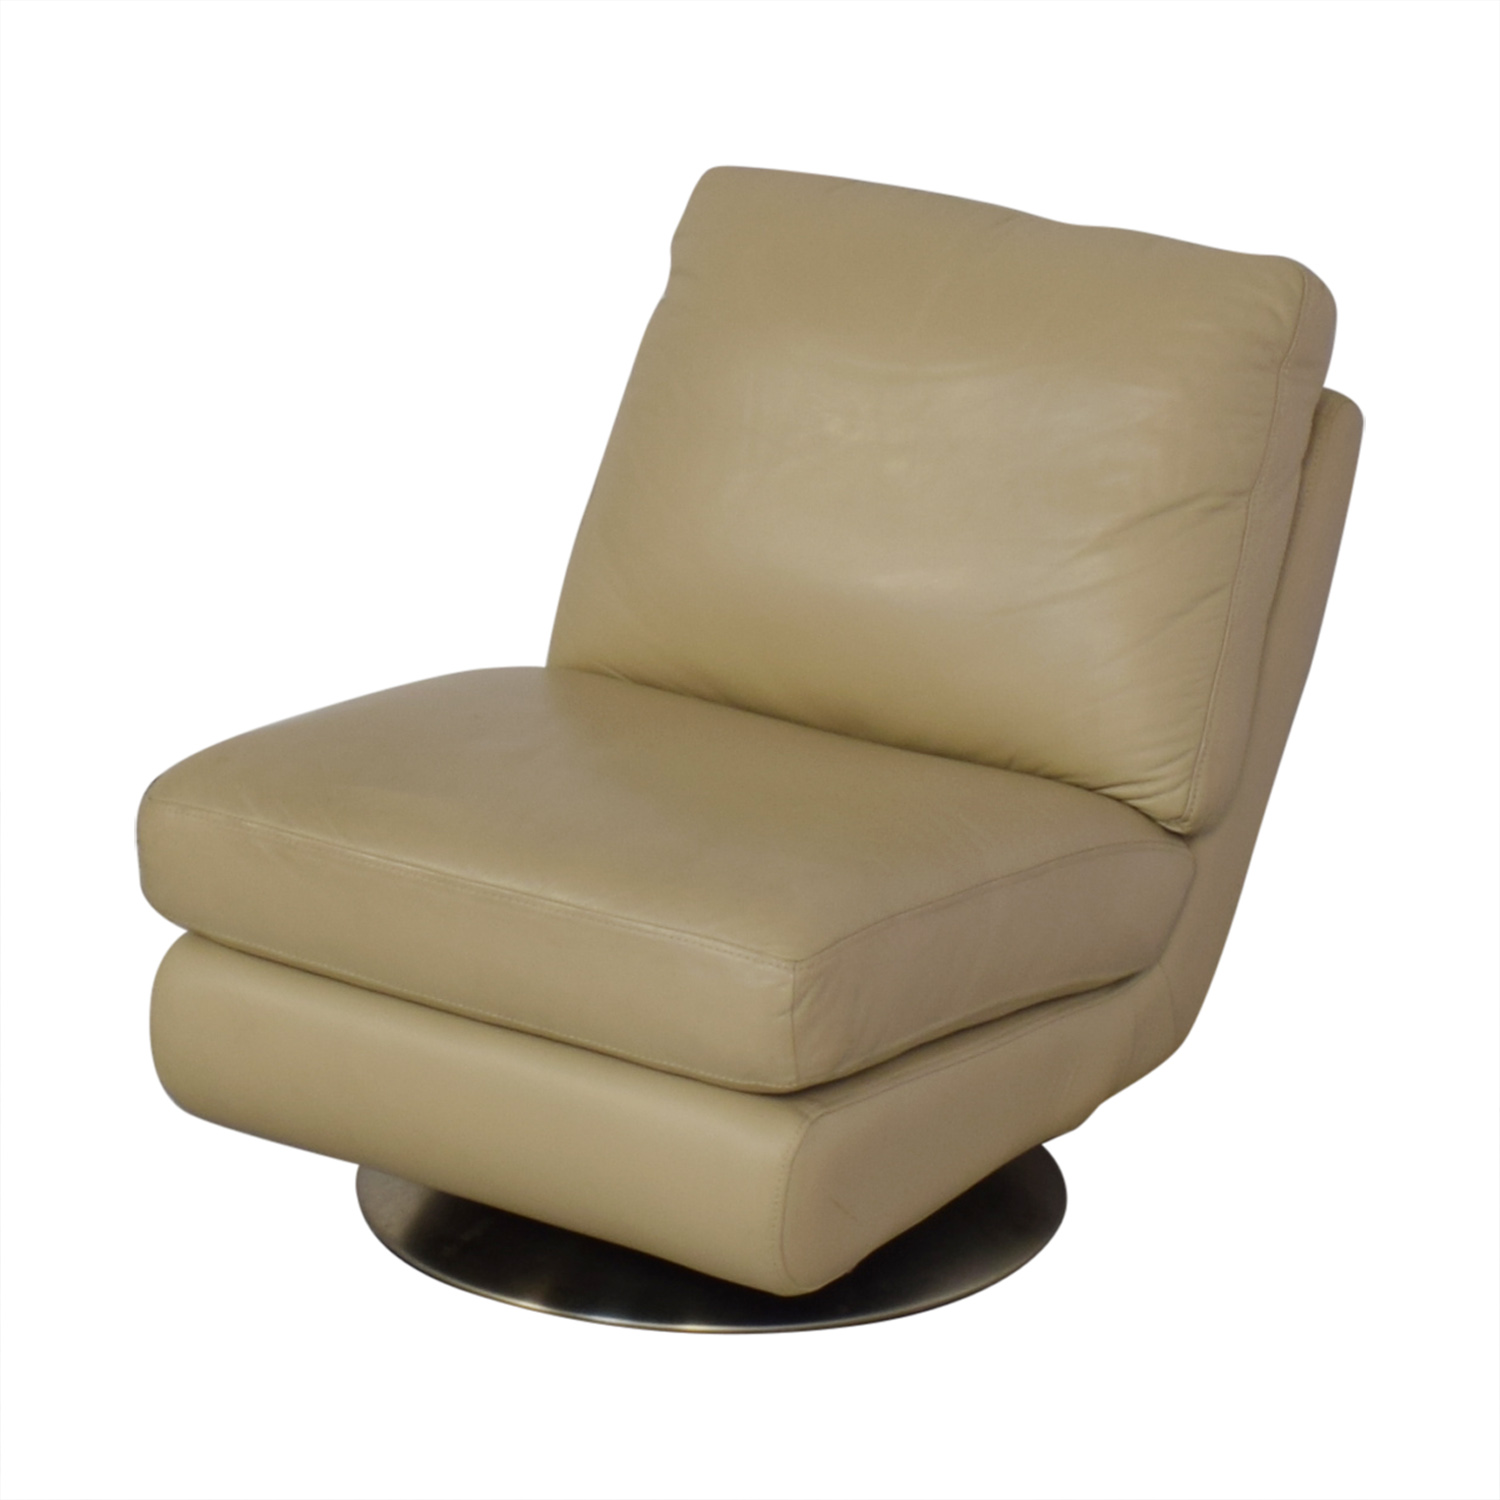 buy West Elm Armless Swivel Chair West Elm